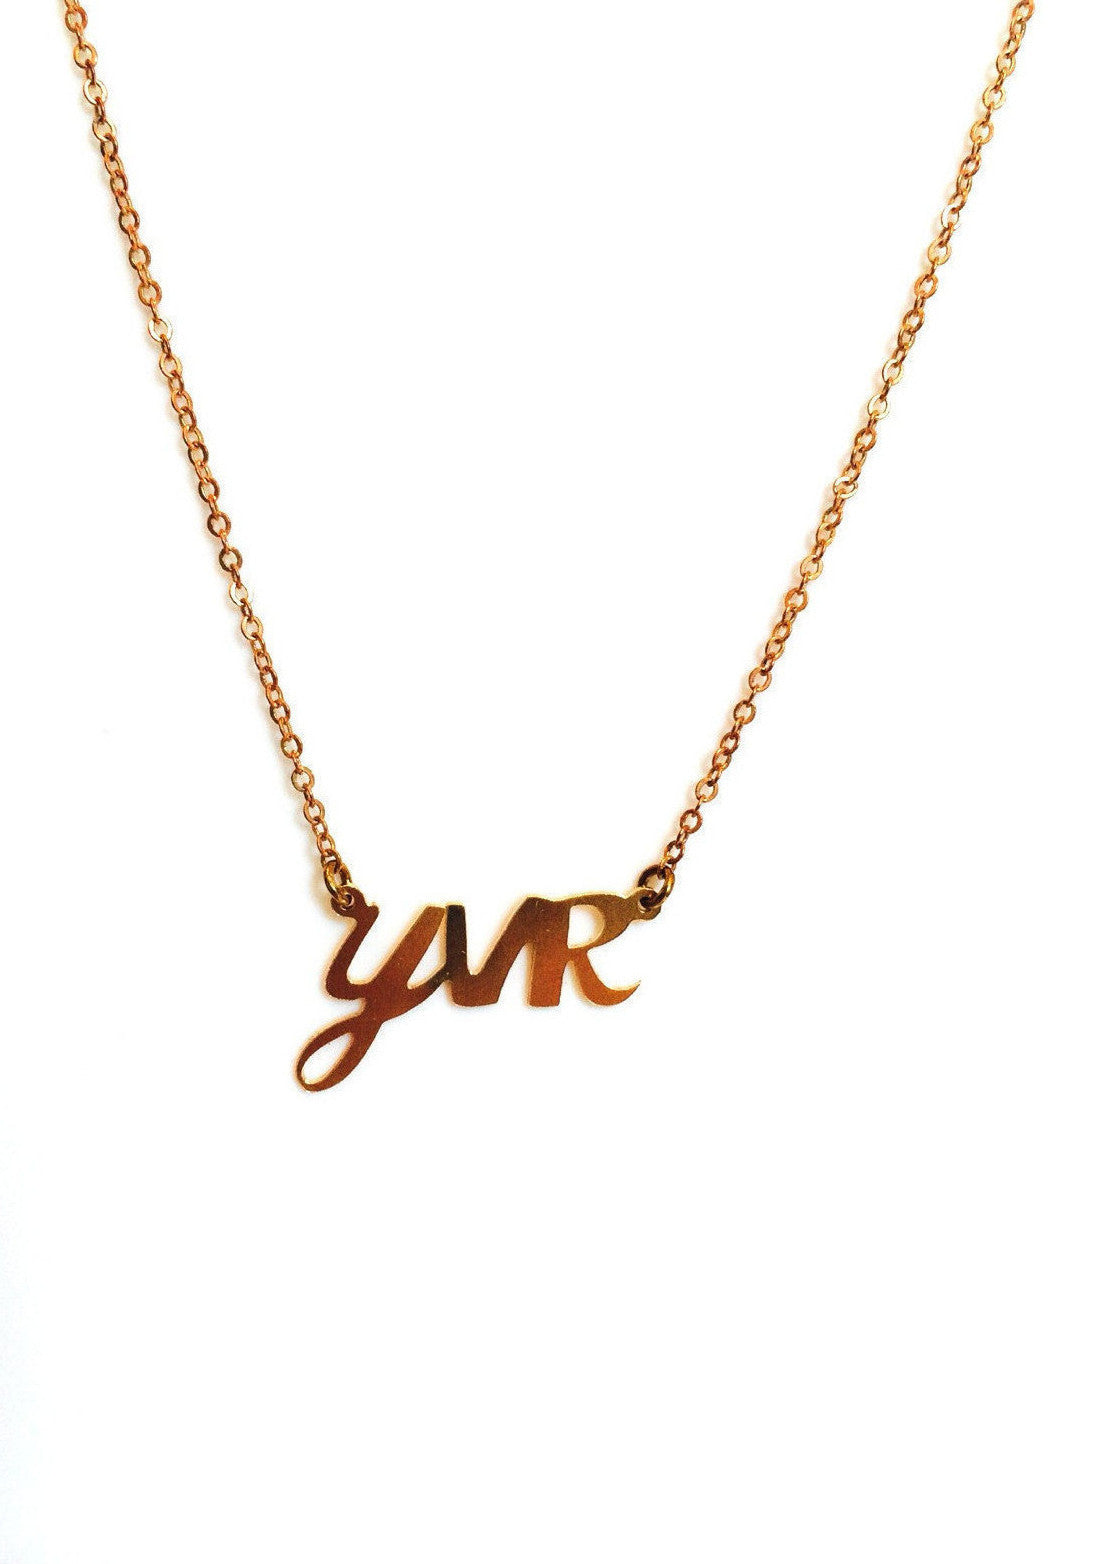 YVR Necklace